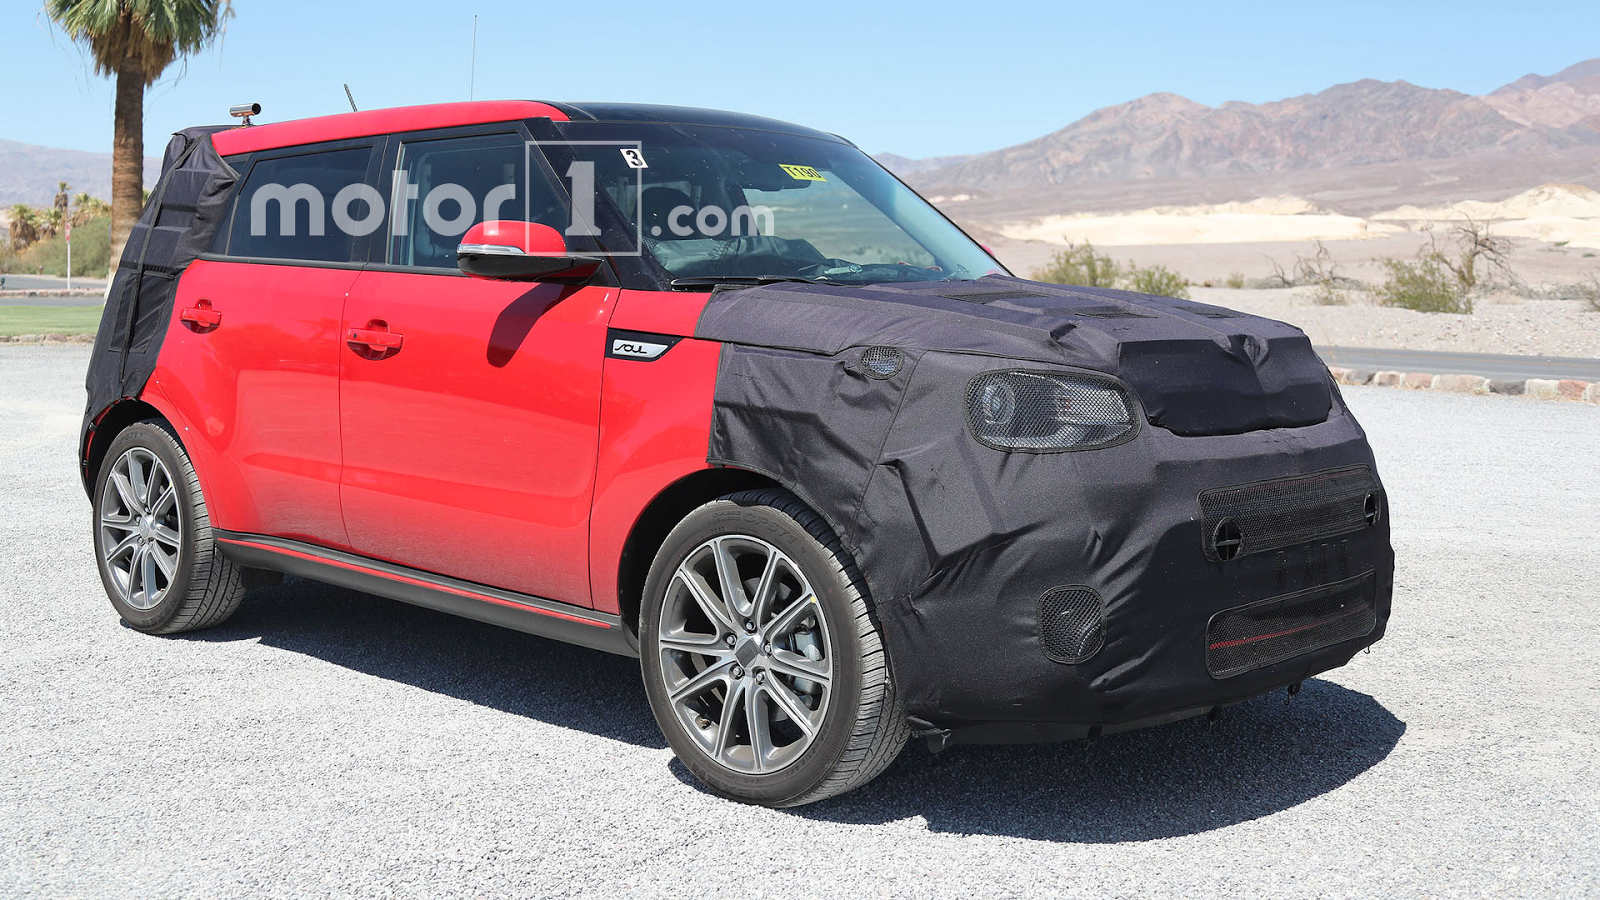 tha kia soul blog 2017 kia soul 1 6l turbo testing in death valley california more 8 pics. Black Bedroom Furniture Sets. Home Design Ideas